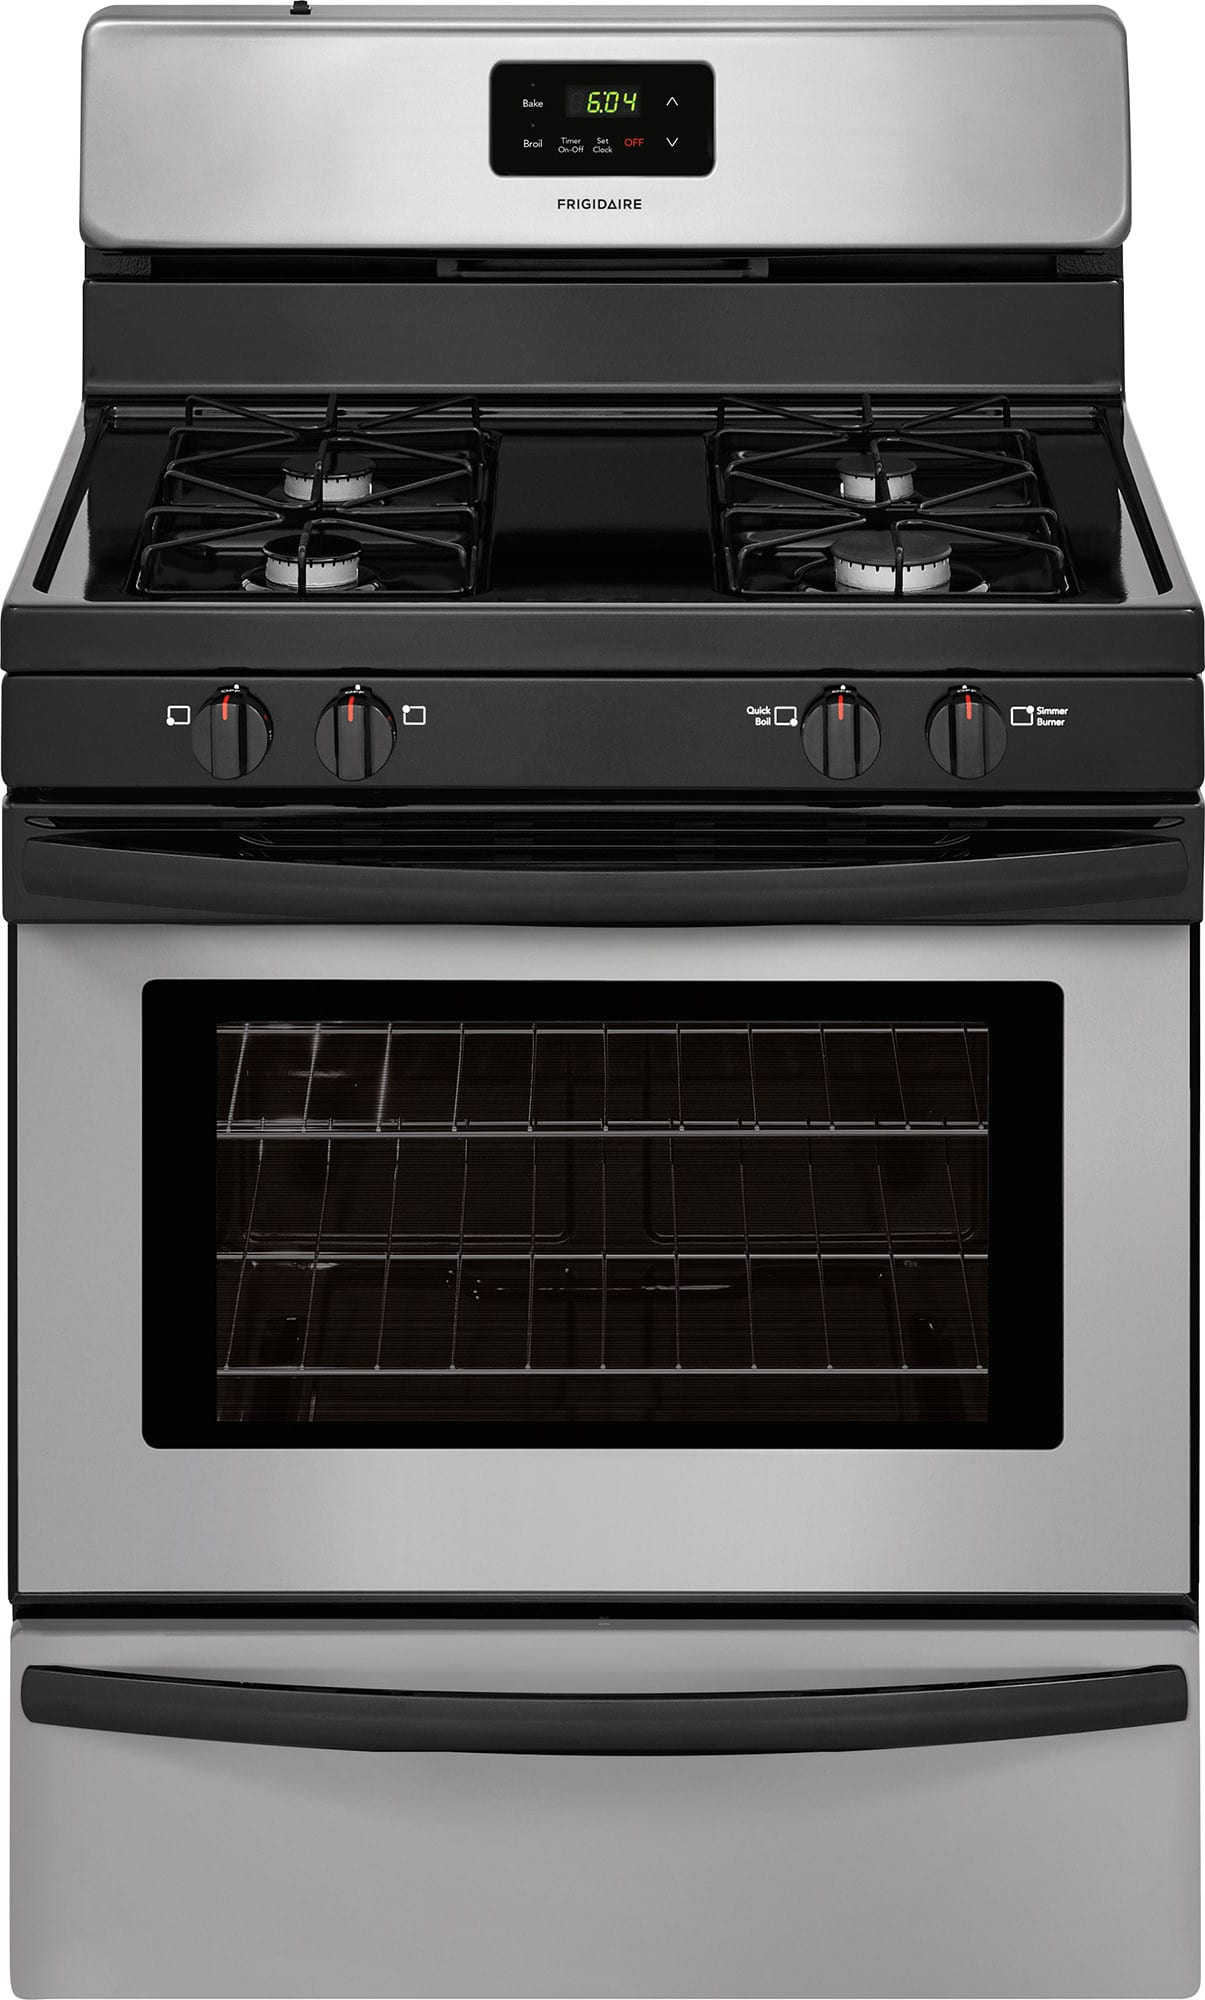 Frigidaire Ffgf3016tm 30 Inch Freestanding Gas Range With